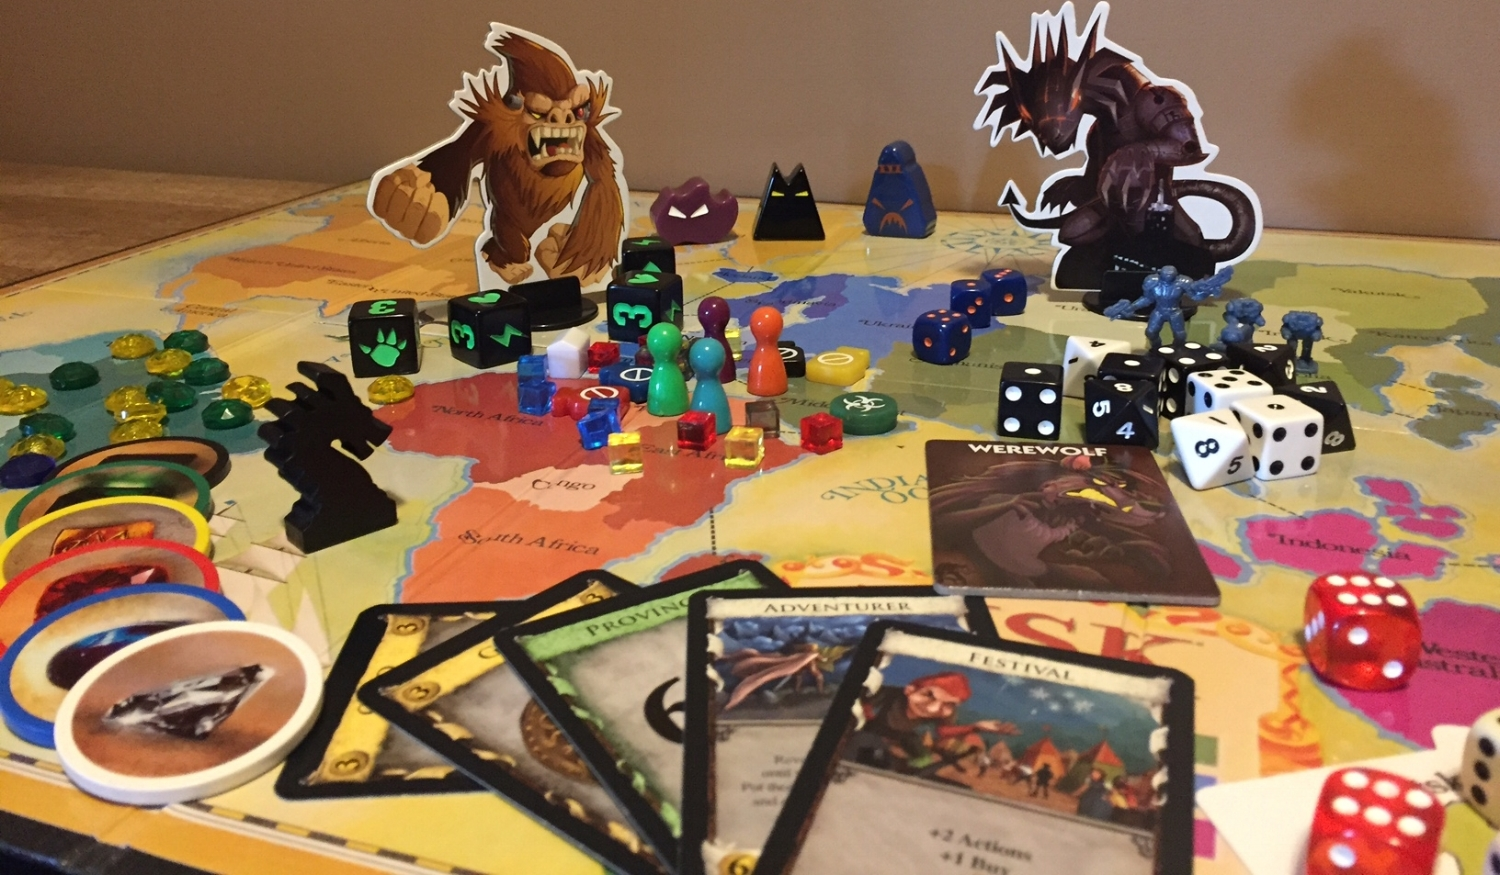 These are the definitive Ten Types of Board Games Everyone Should Know. Get ready to argue over why we're wrong!